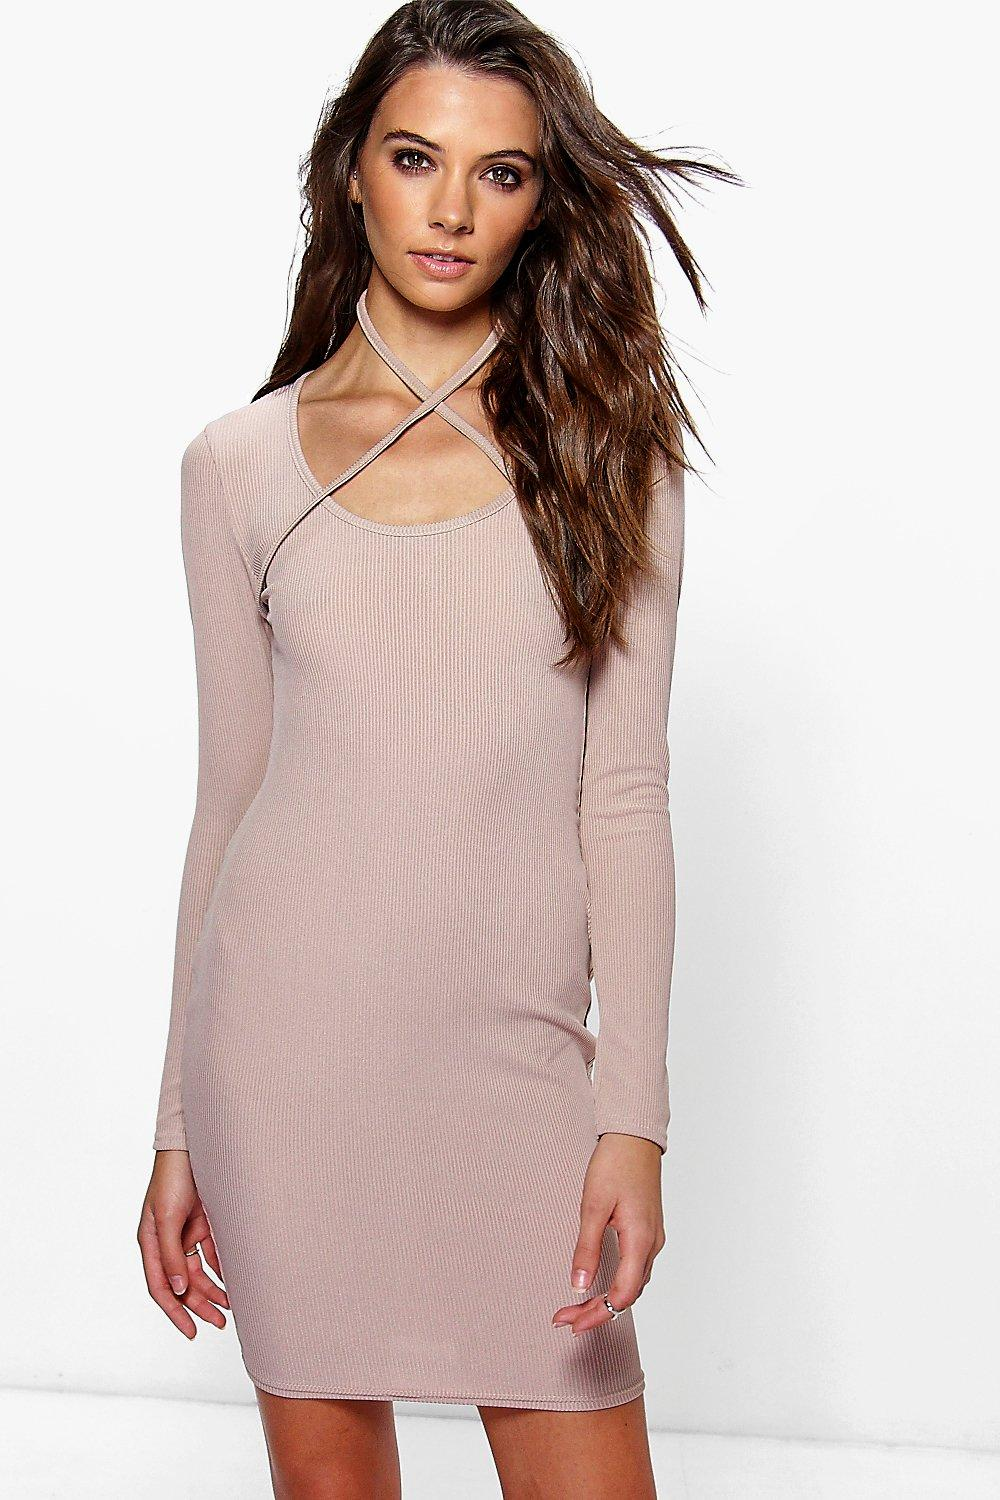 Sienneh Cross Neck Strap Ribbed Bodycon Dress